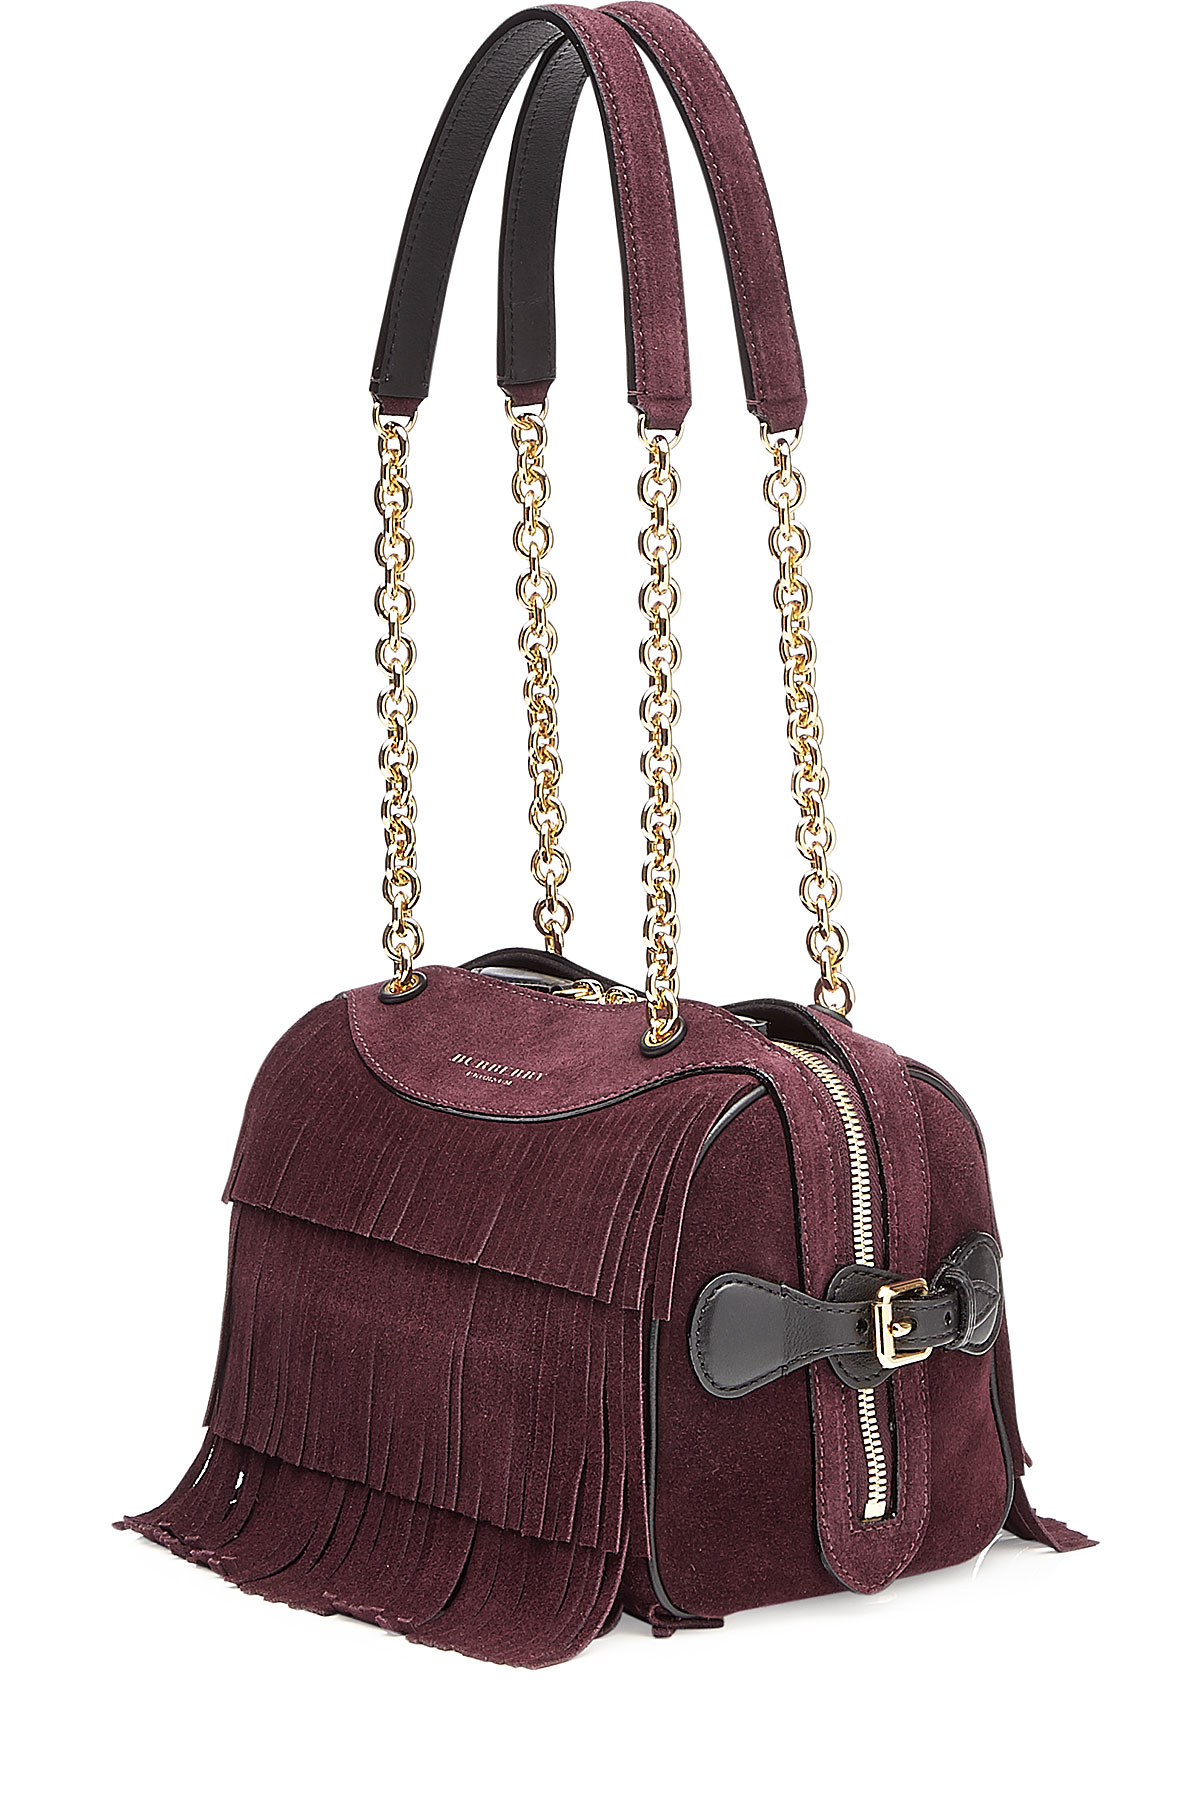 fa08cb305151 Lyst - Burberry Prorsum Fringed Suede Shoulder Bag - Red in Purple